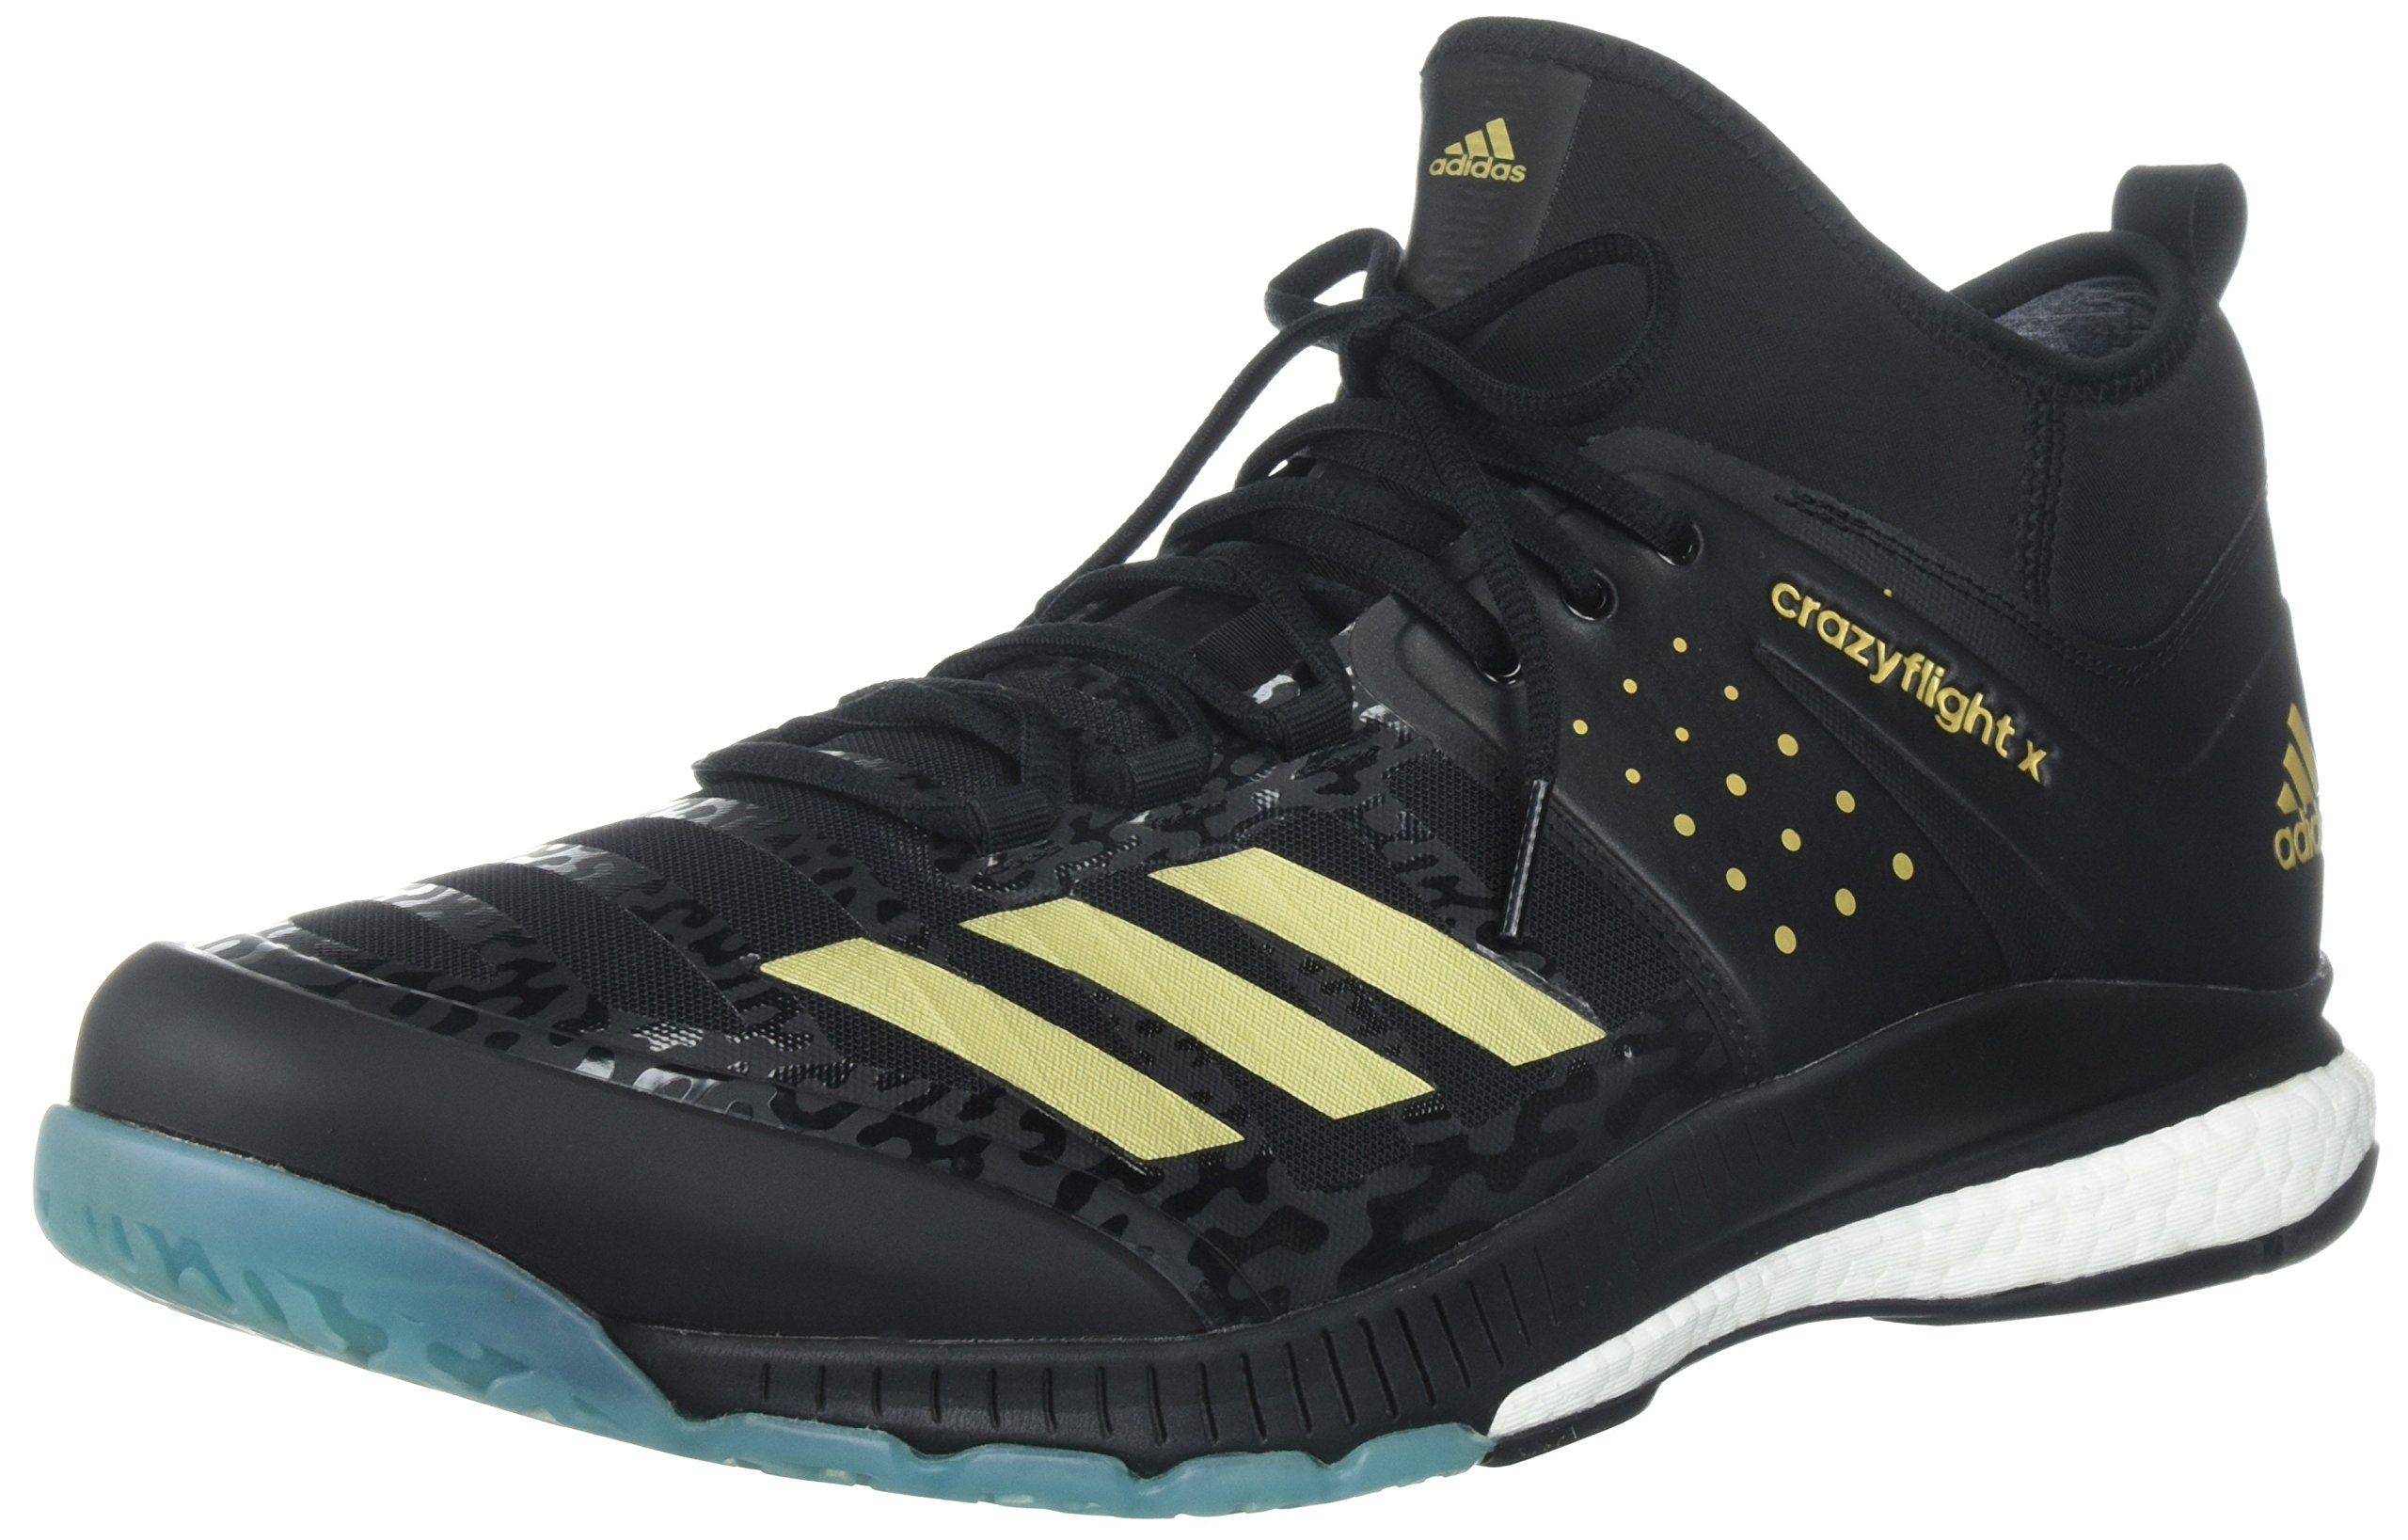 adidas Performance Men's Crazyflight X Mid Volleyball Shoes, Core Black/Gold Met/Icey Blue, 16 M US by adidas